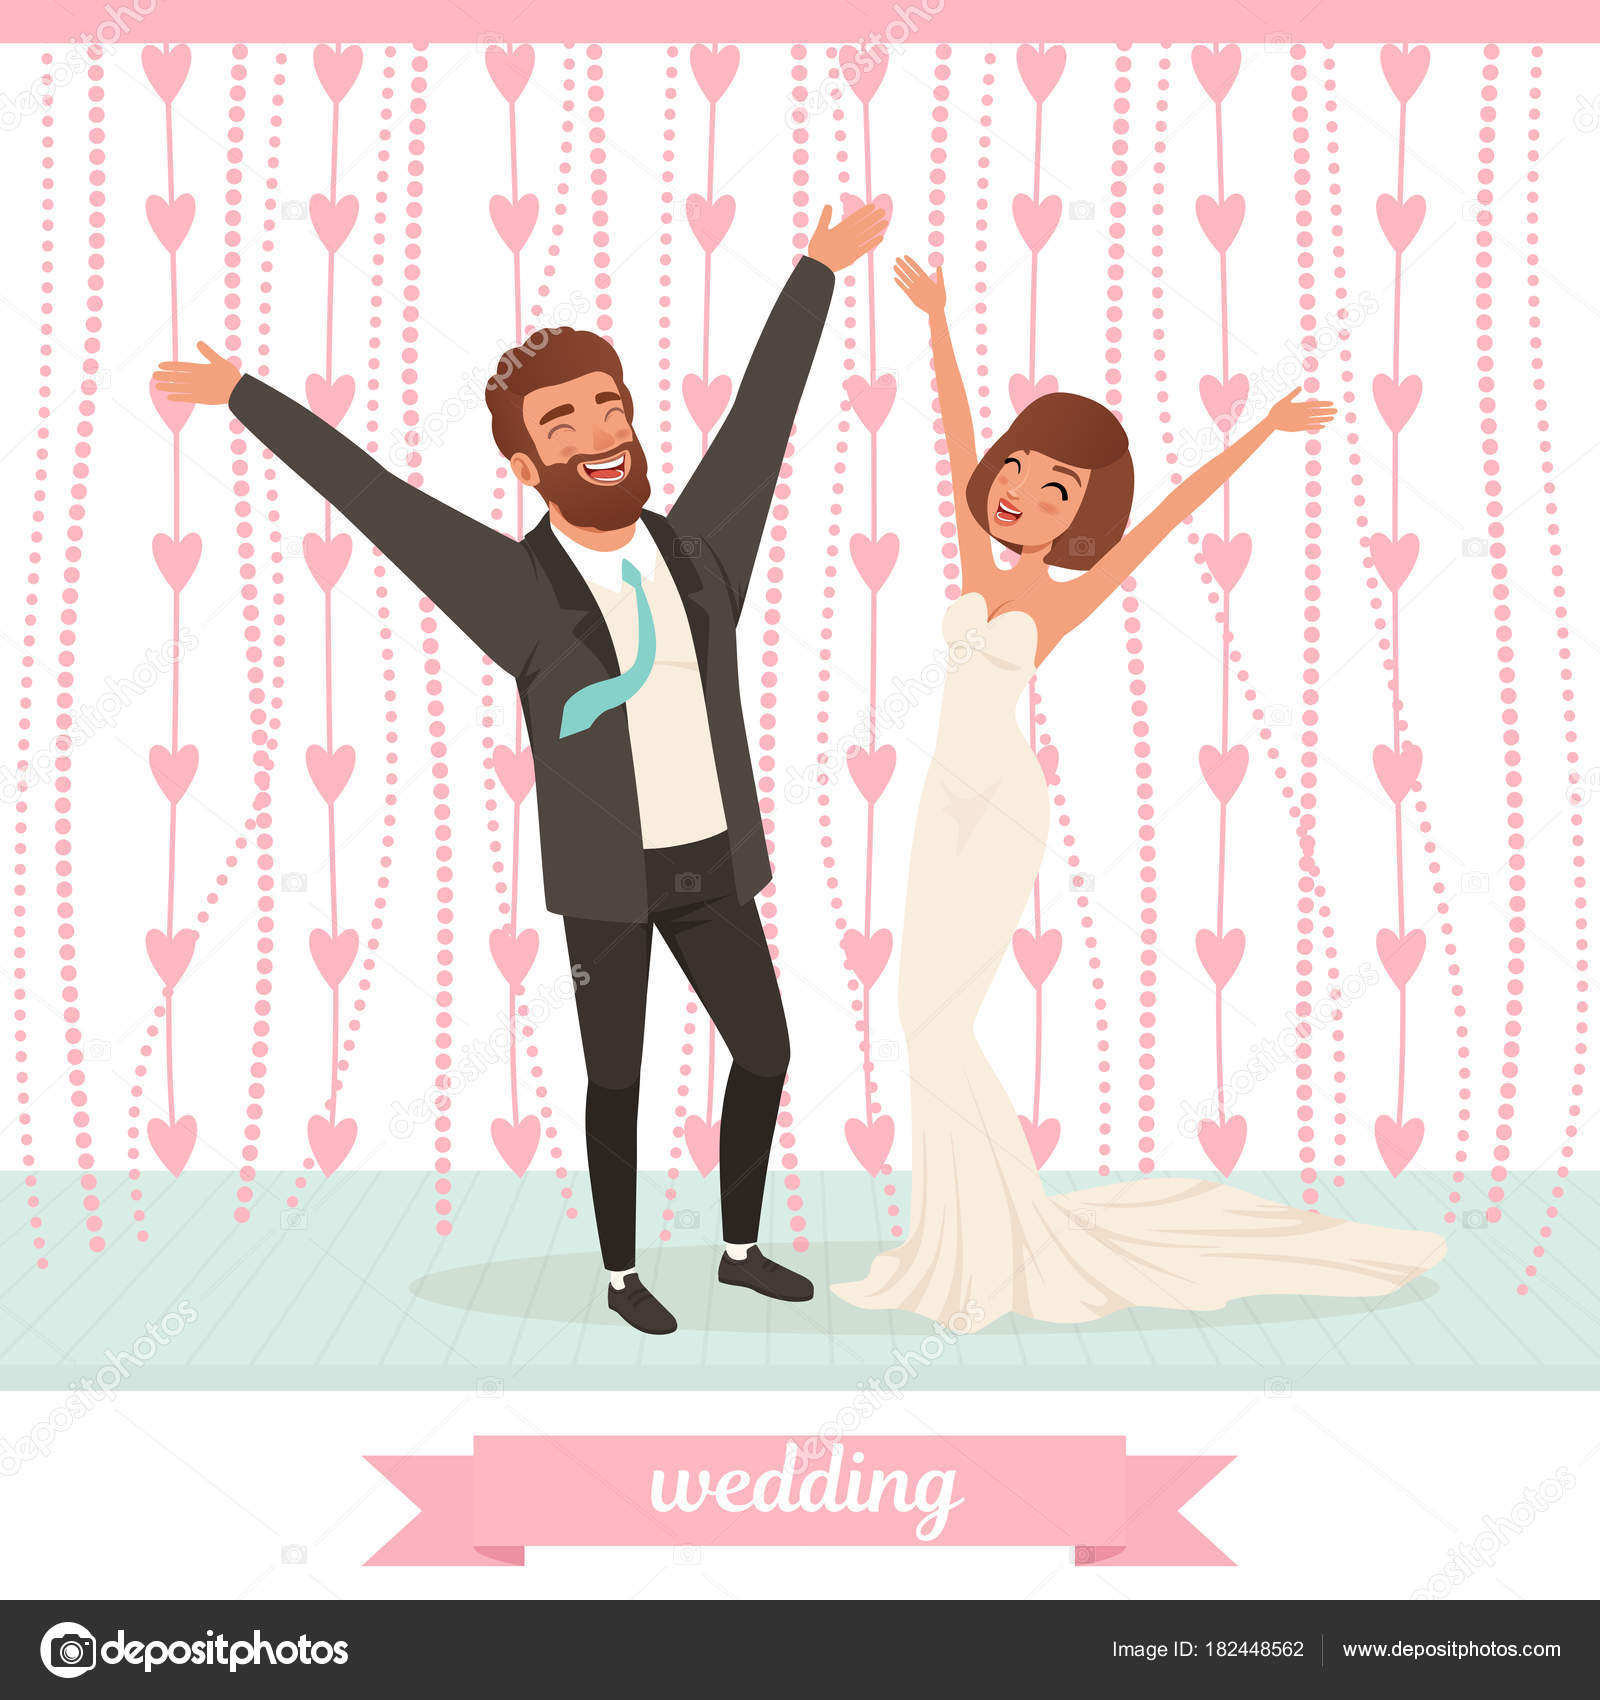 Happy Married Couple Having Fun On Dance Floor With Hand Up Wedding